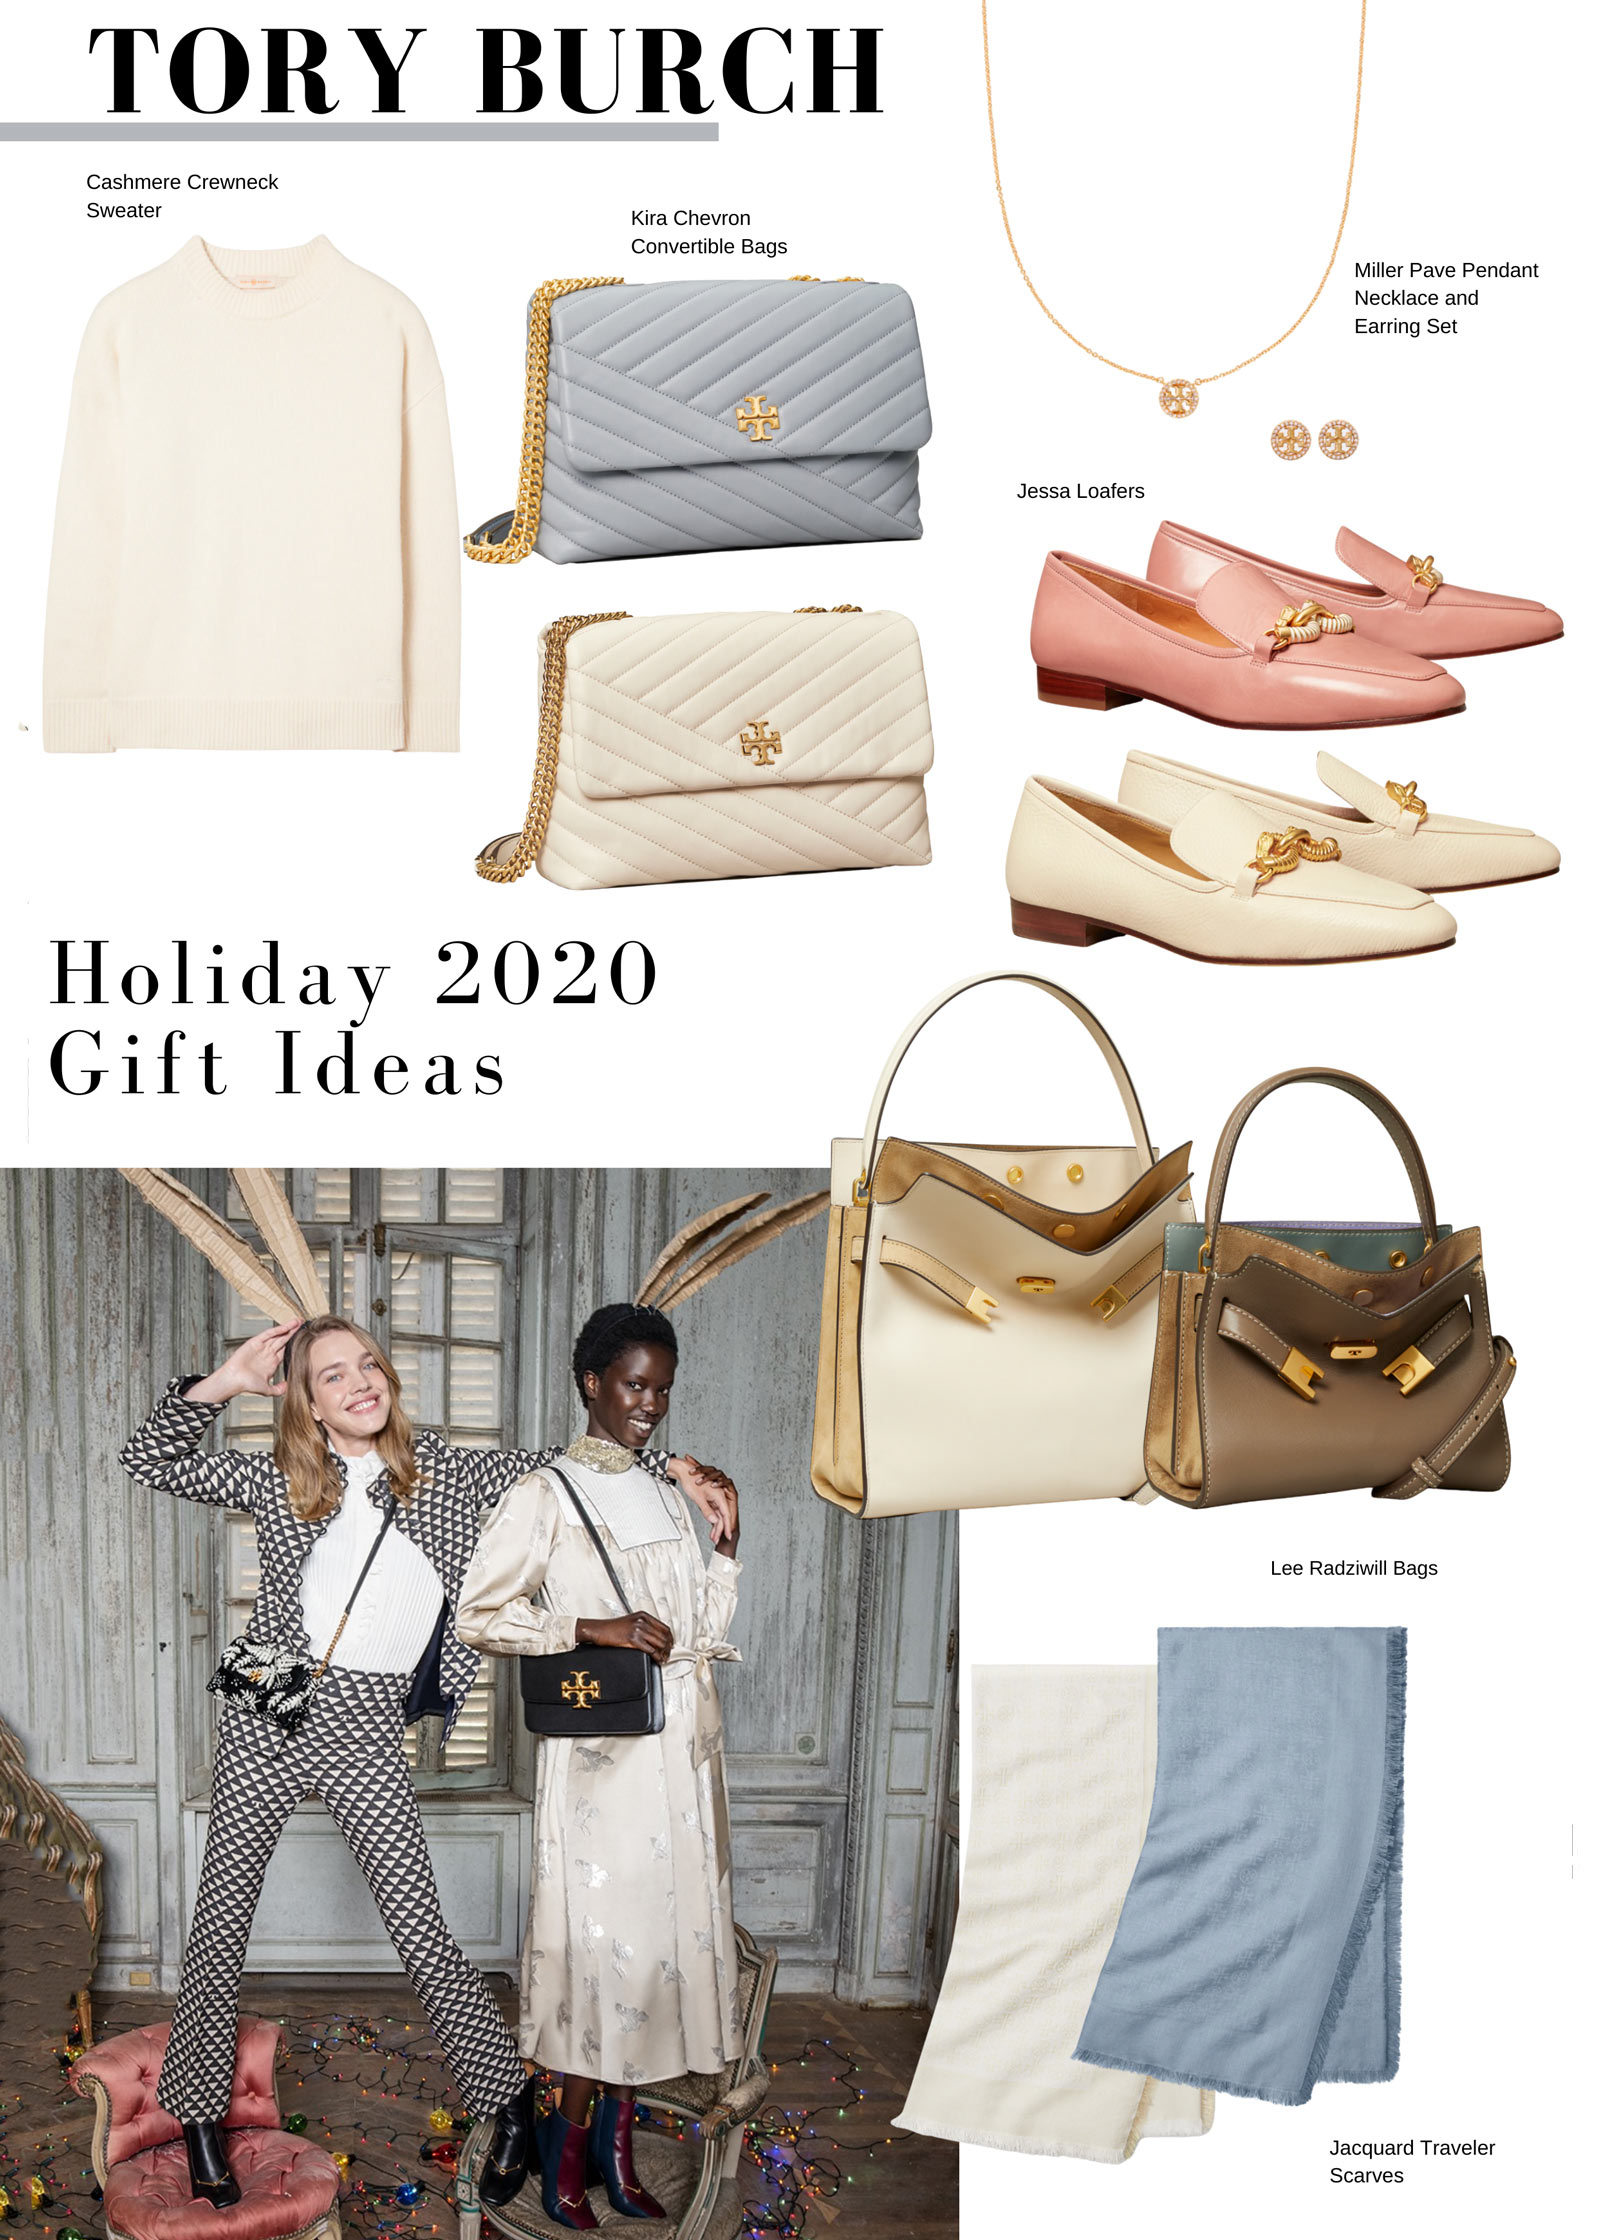 Tory Burch Holiday Gift Ideas